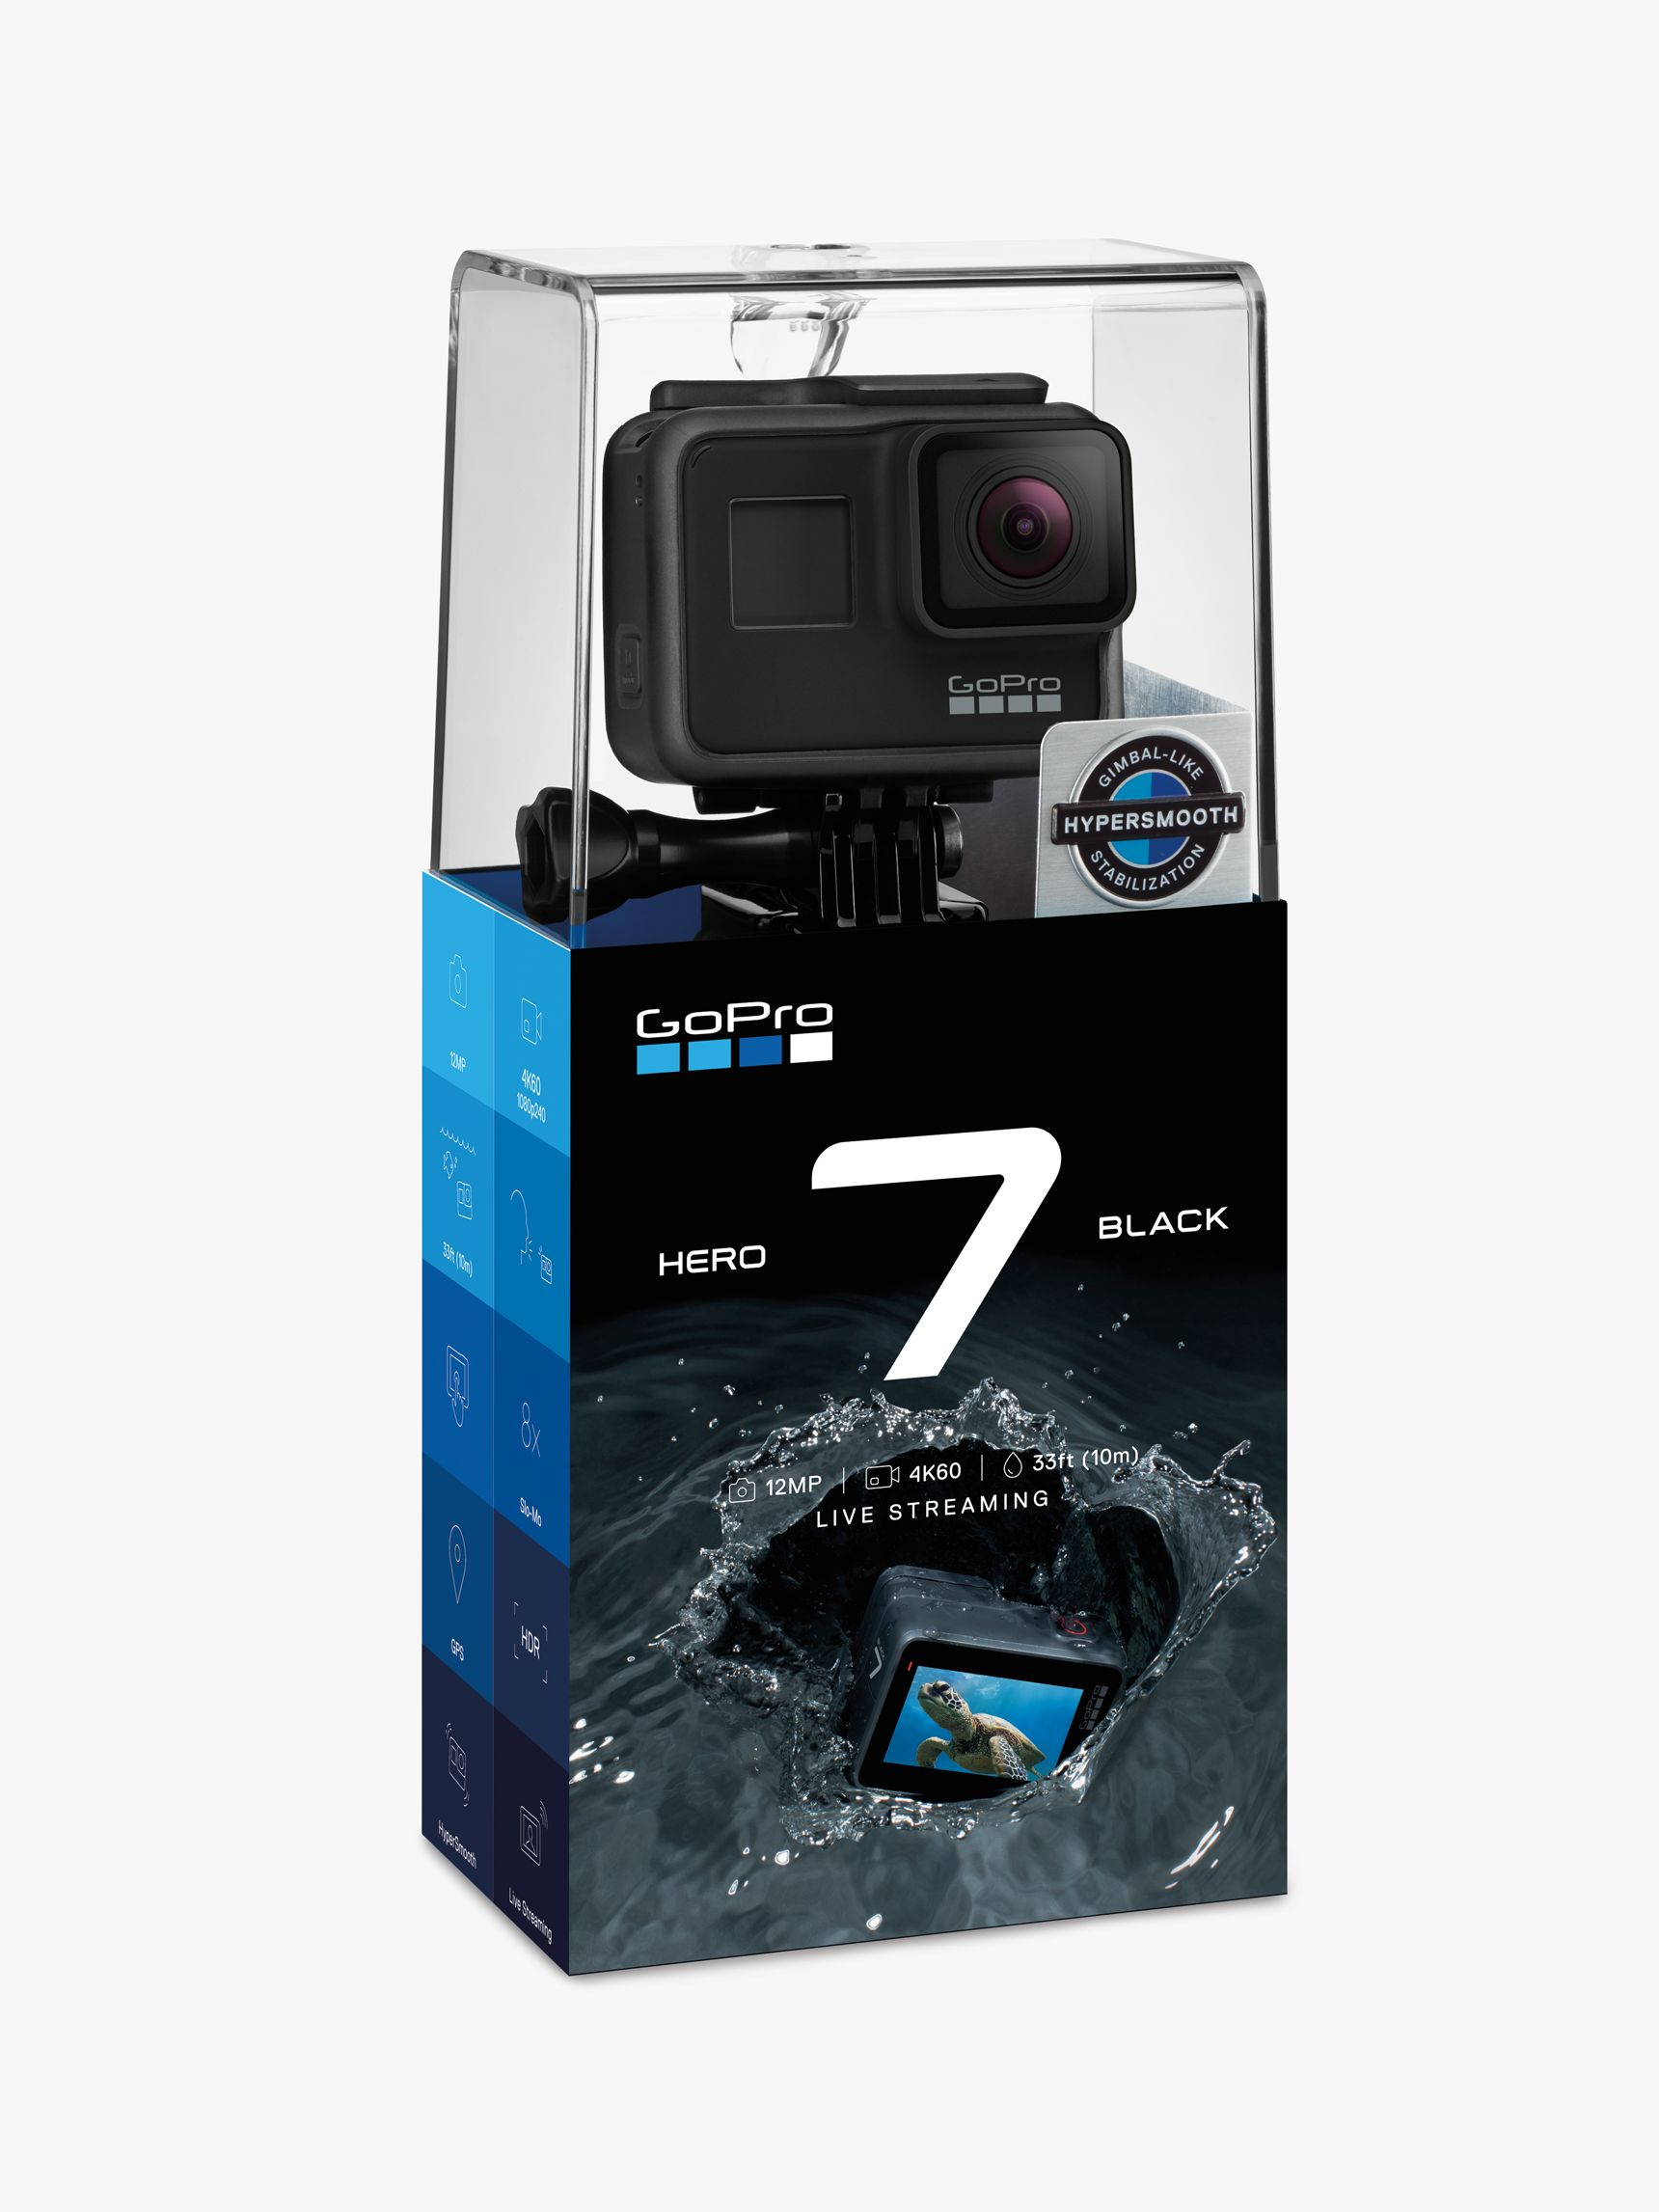 Gopro GoPro HERO7 Black Camcorder, 4K Ultra HD, 60 FPS, 12MP, Wi-Fi, Waterproof, GPS